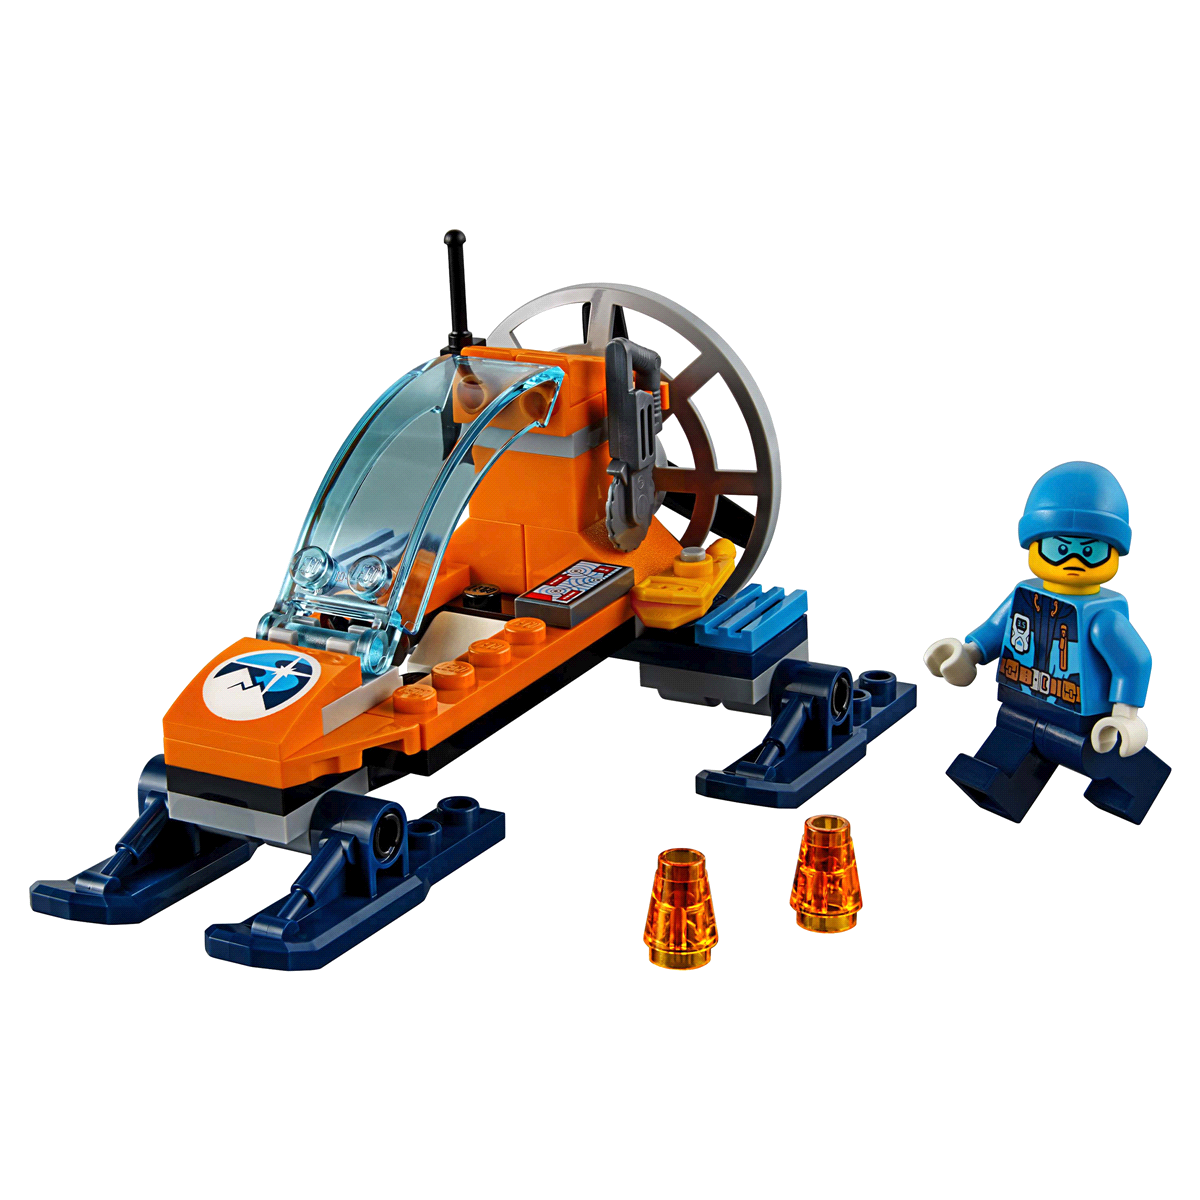 slide 8 of 8, LEGO City Arctic Expedition Ice Glider 60190,